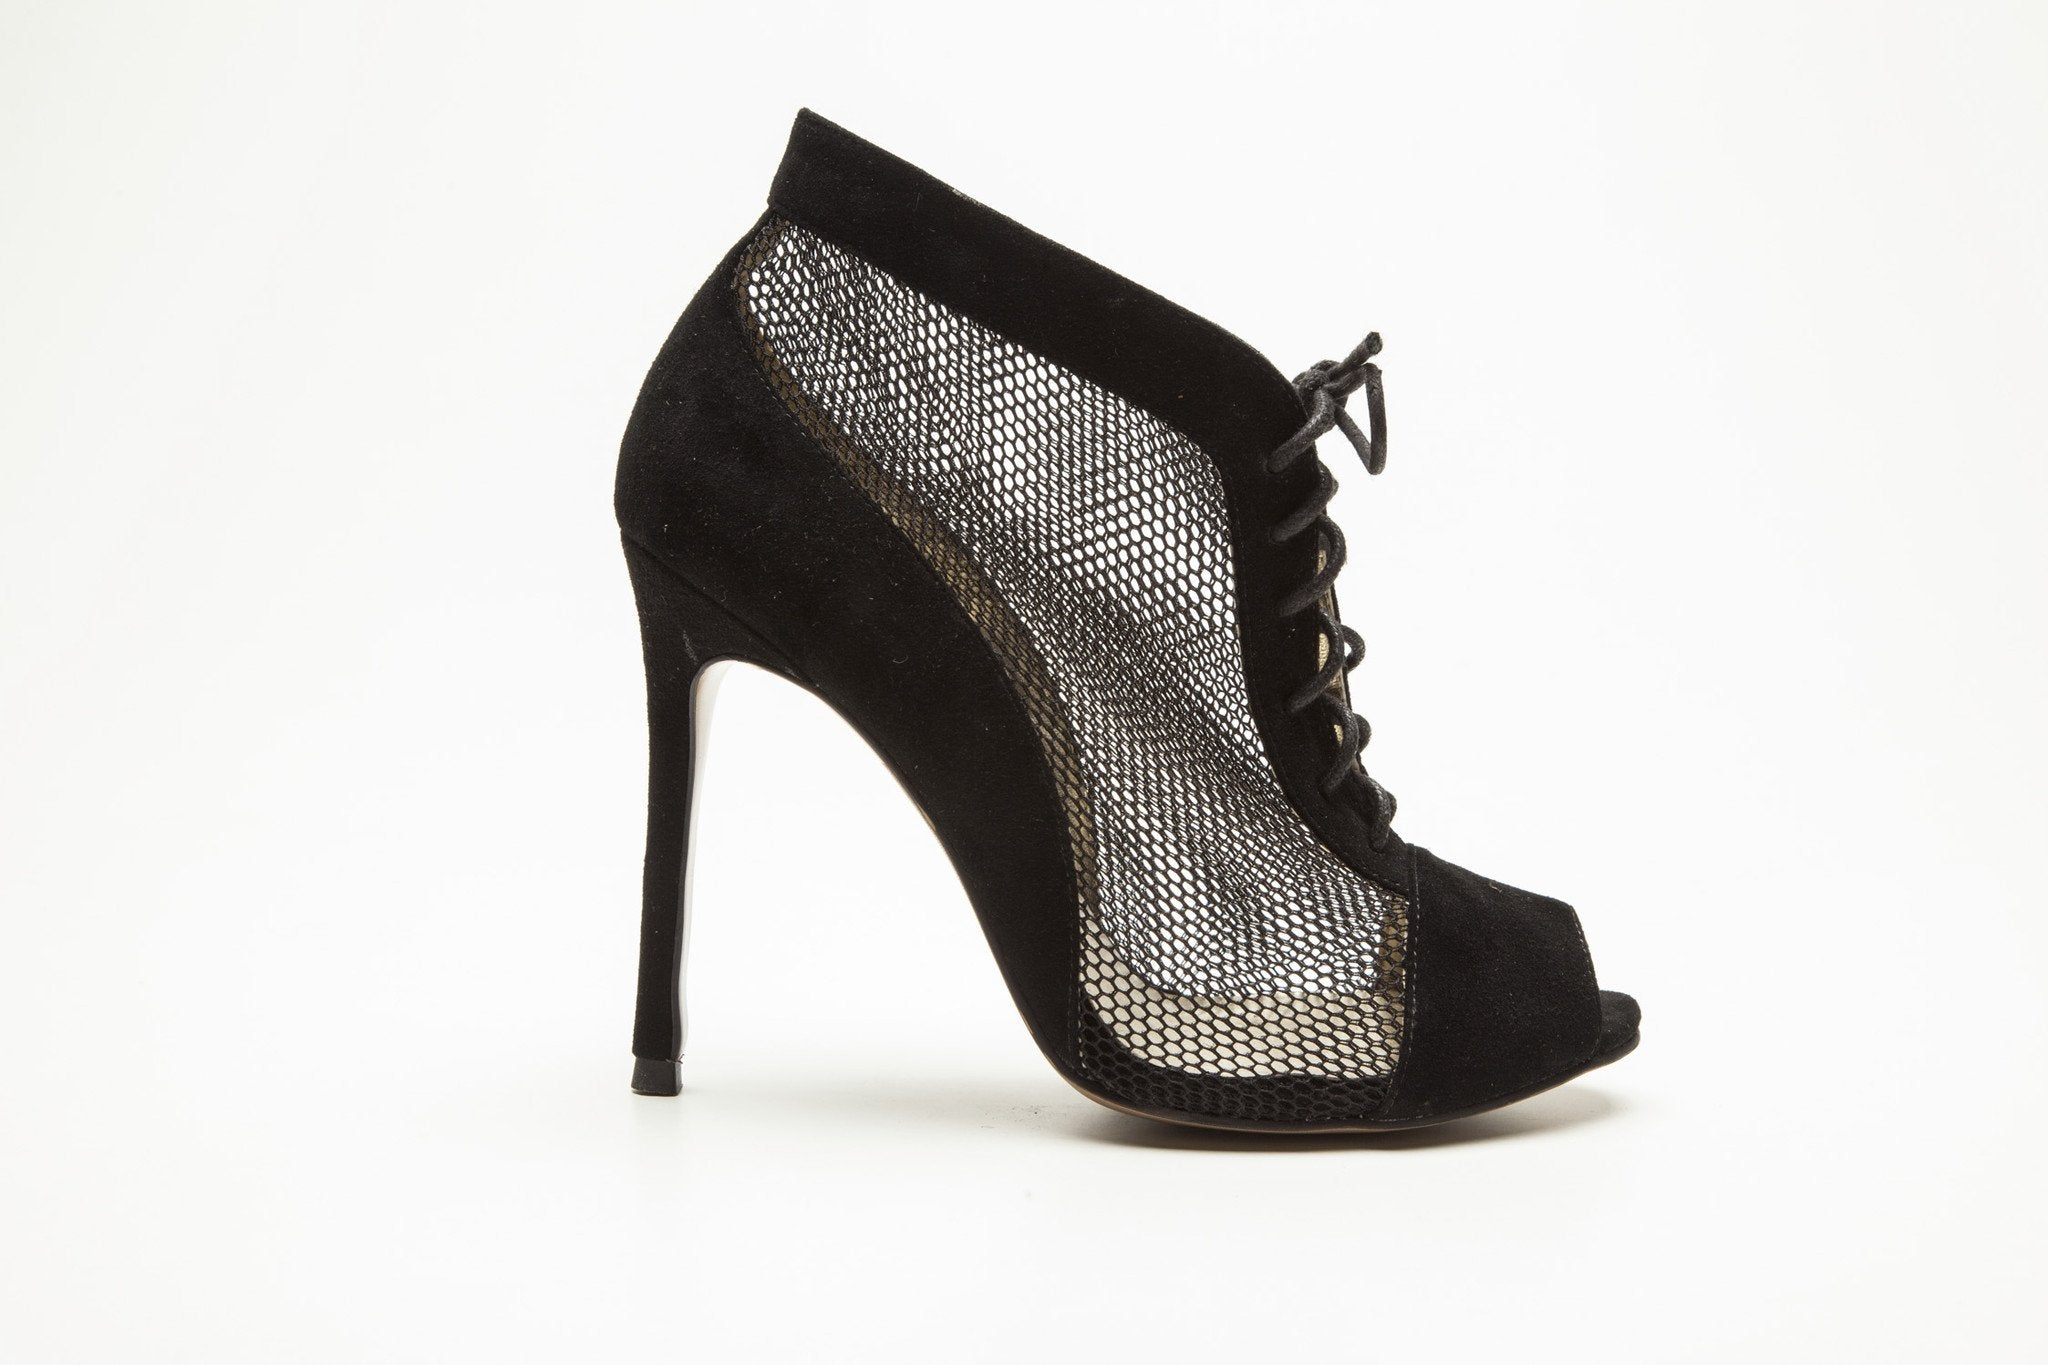 SW16007 Suede Lace-up Peep-toe Boot 60% off - Sam Star shoes